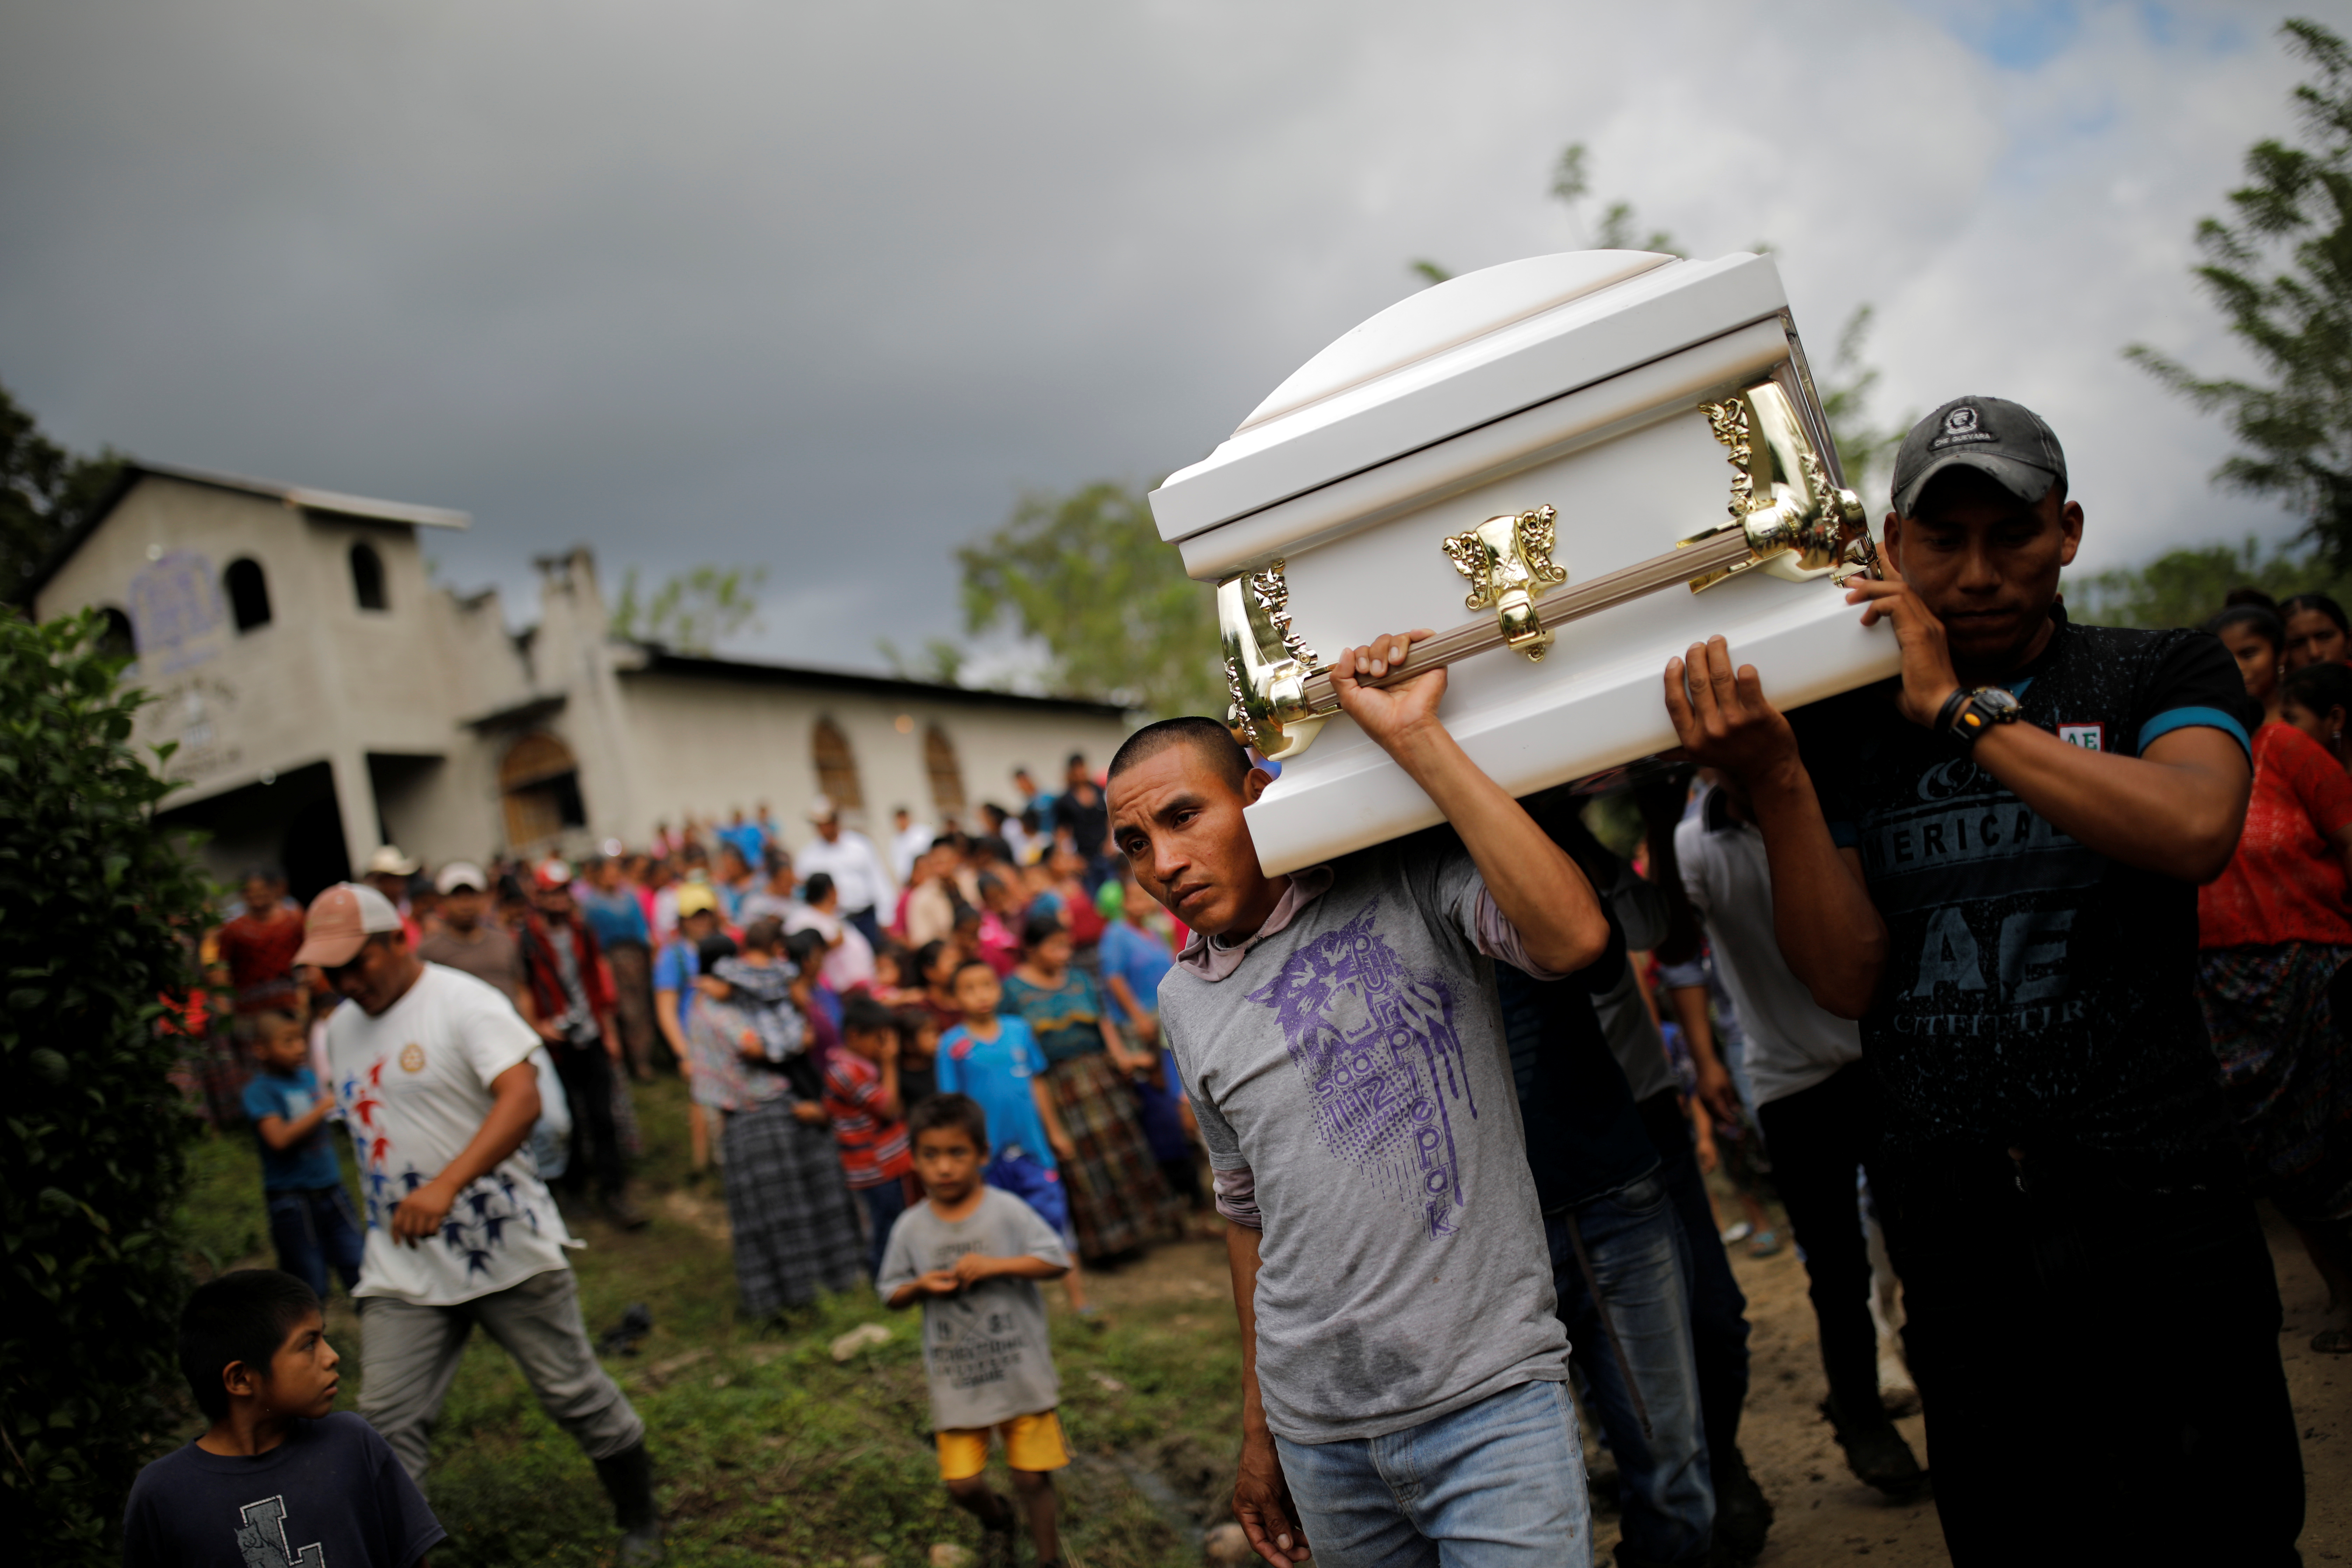 Friends and family carry a coffin with the remains of Jakelin Caal, 7, who died while in the custody of U.S. Customs and Border Protection, during her funeral at her home village of San Antonio Secortez, in Guatemala, Dec. 25, 2018.